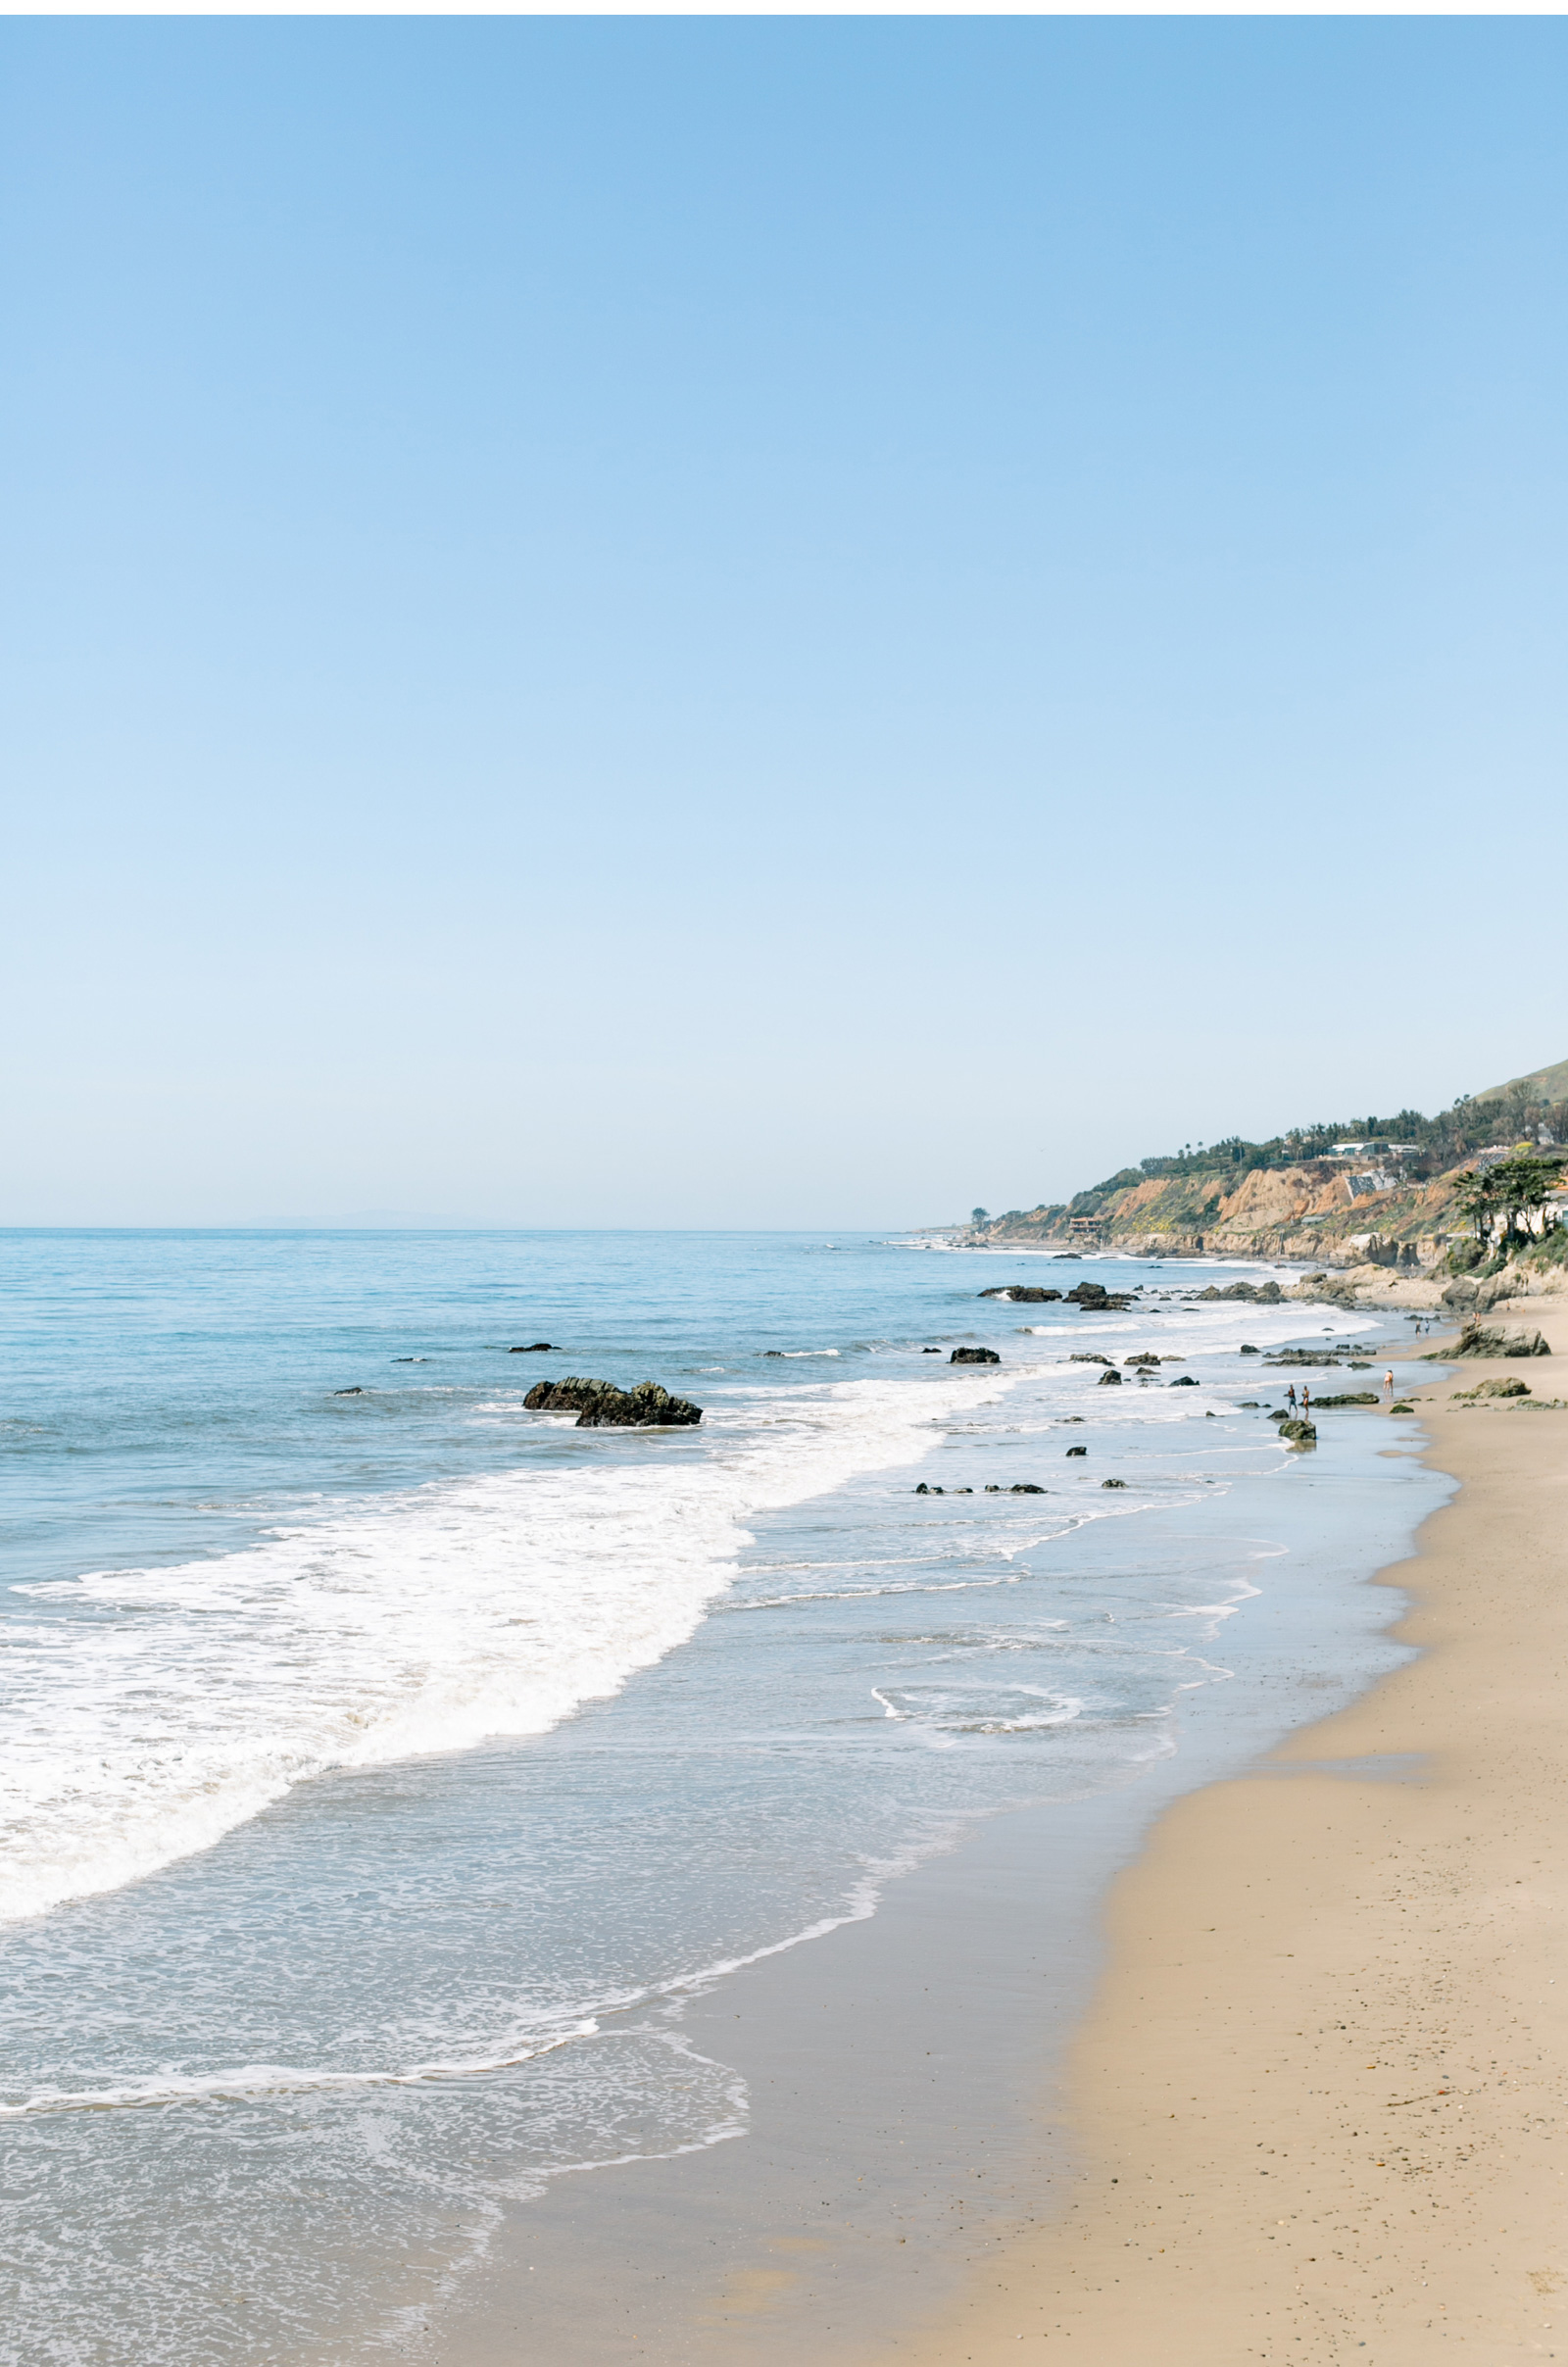 Southern-California-Wedding-Venues-Malibu-Wedding-Photographer-Style-Me-Pretty-Natalie-Schutt-Photography_01.jpg